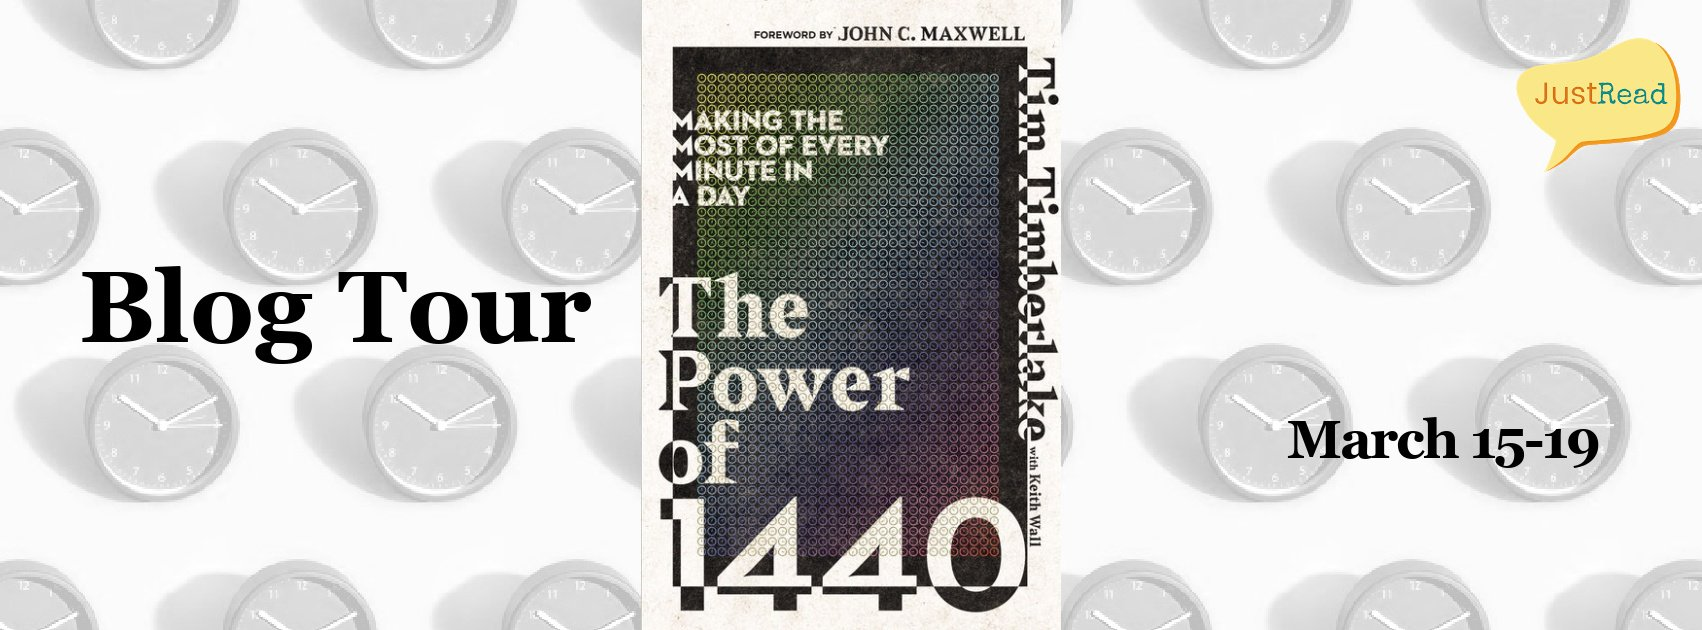 The Power of 1440 JustRead Blog Tour